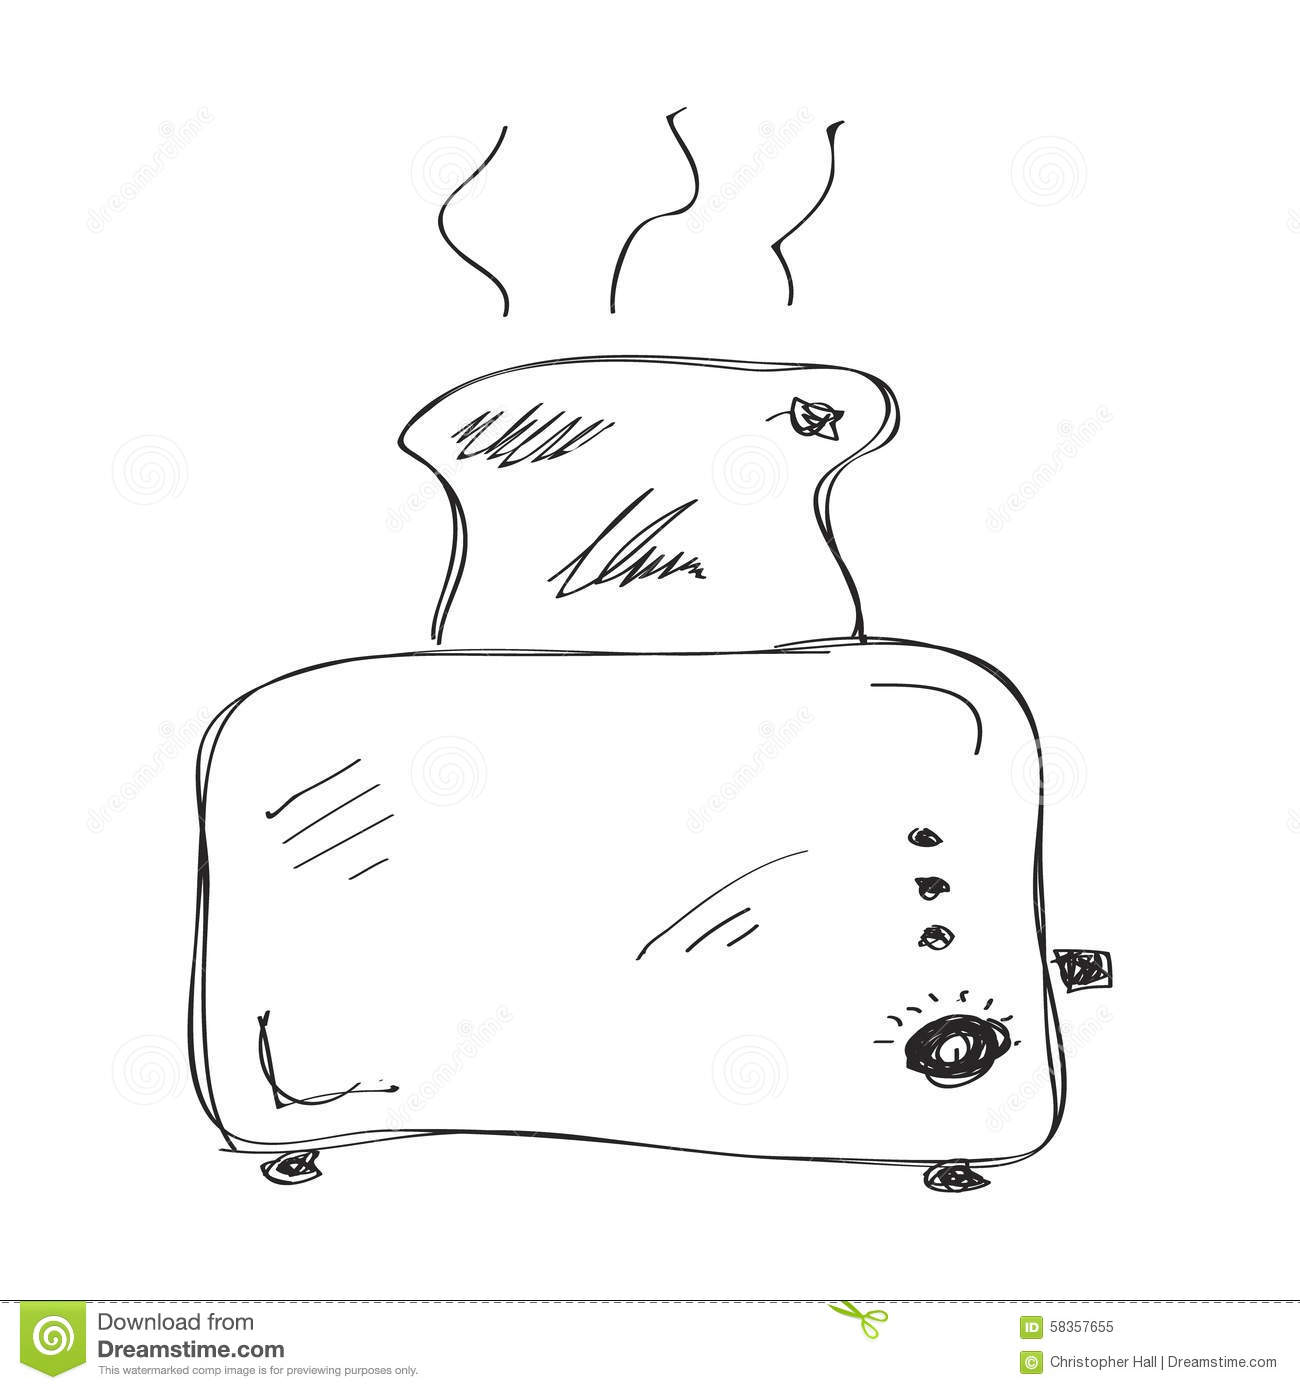 Simple Doodle Of A Toaster Stock Vector Illustration Of